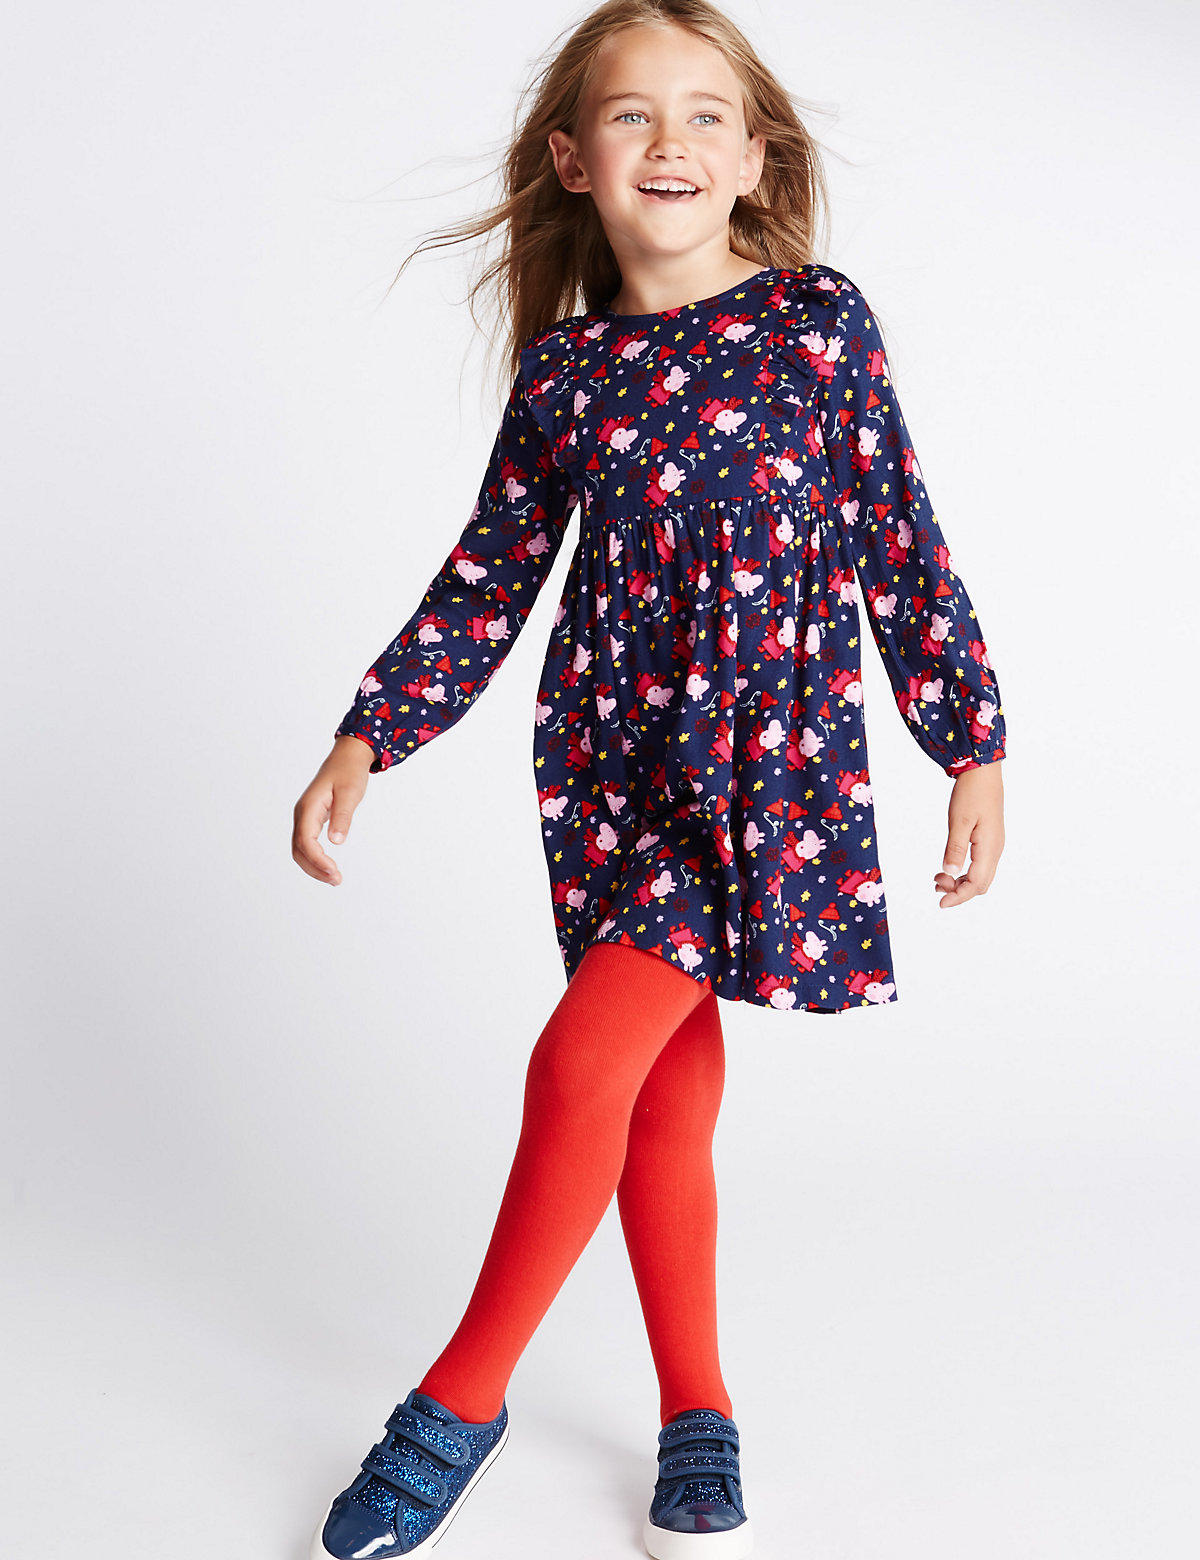 Peppa Pig Woven Dress with Tights (1-7 Years)